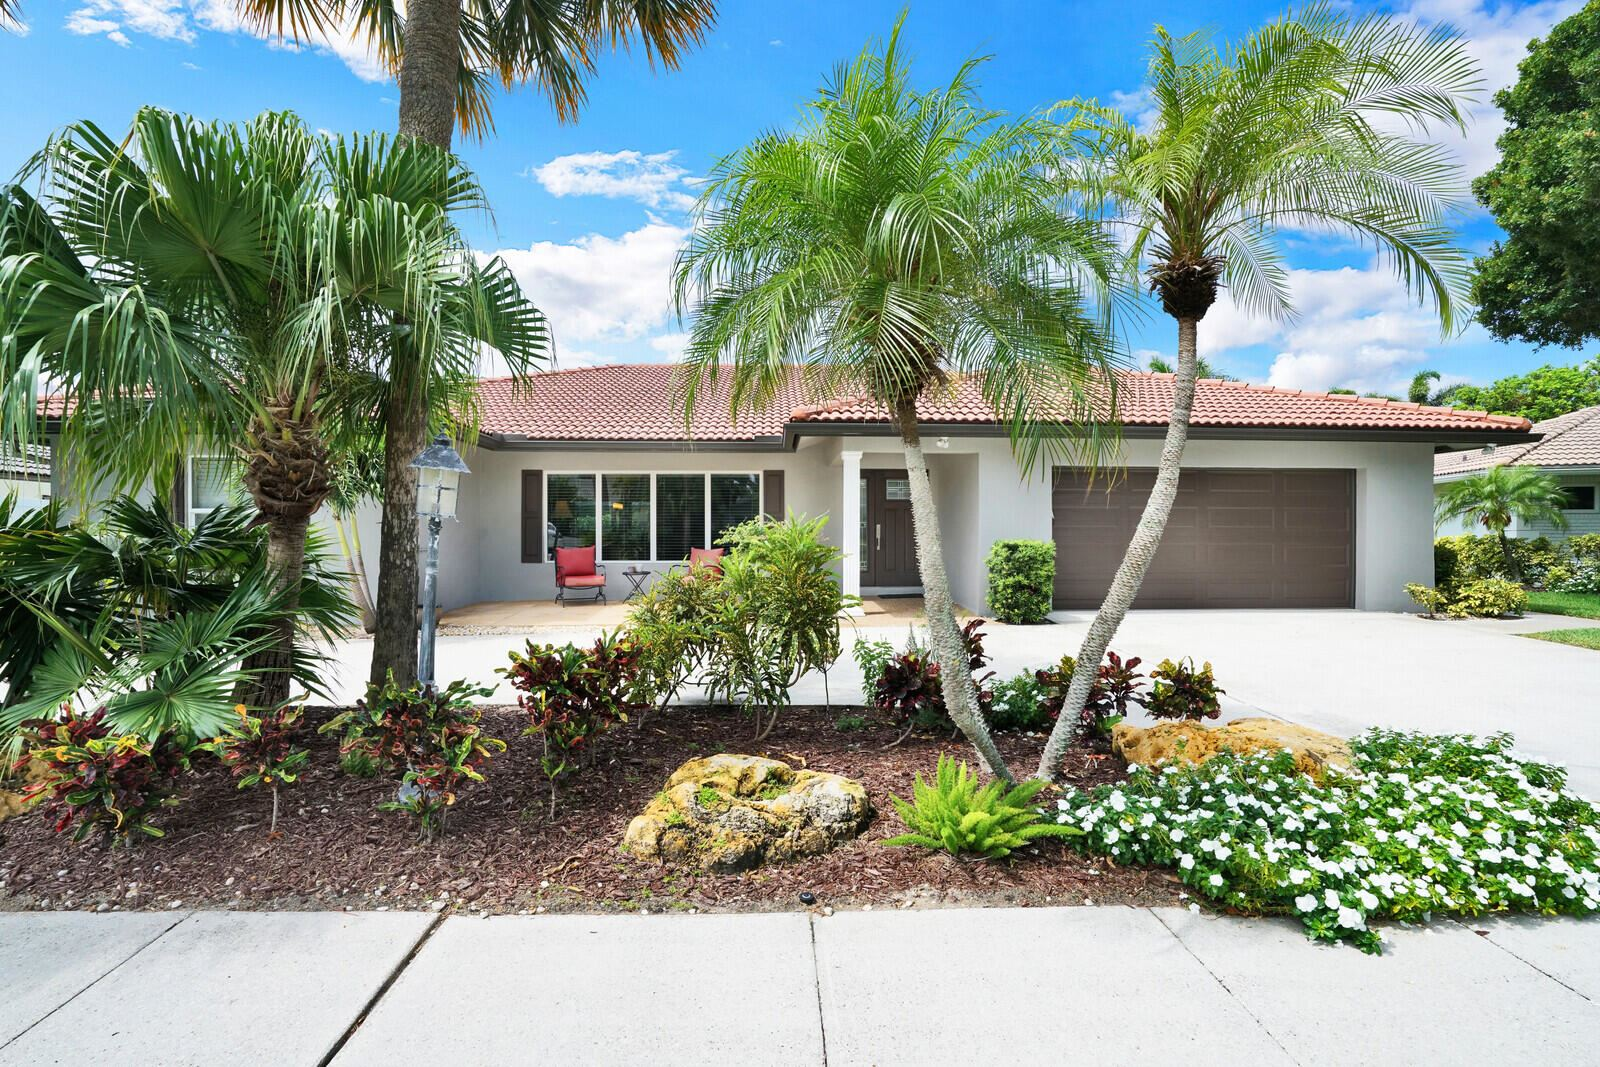 650 SW 16th Street, Boca Raton, FL 33486 - MLS#: RX-10716572